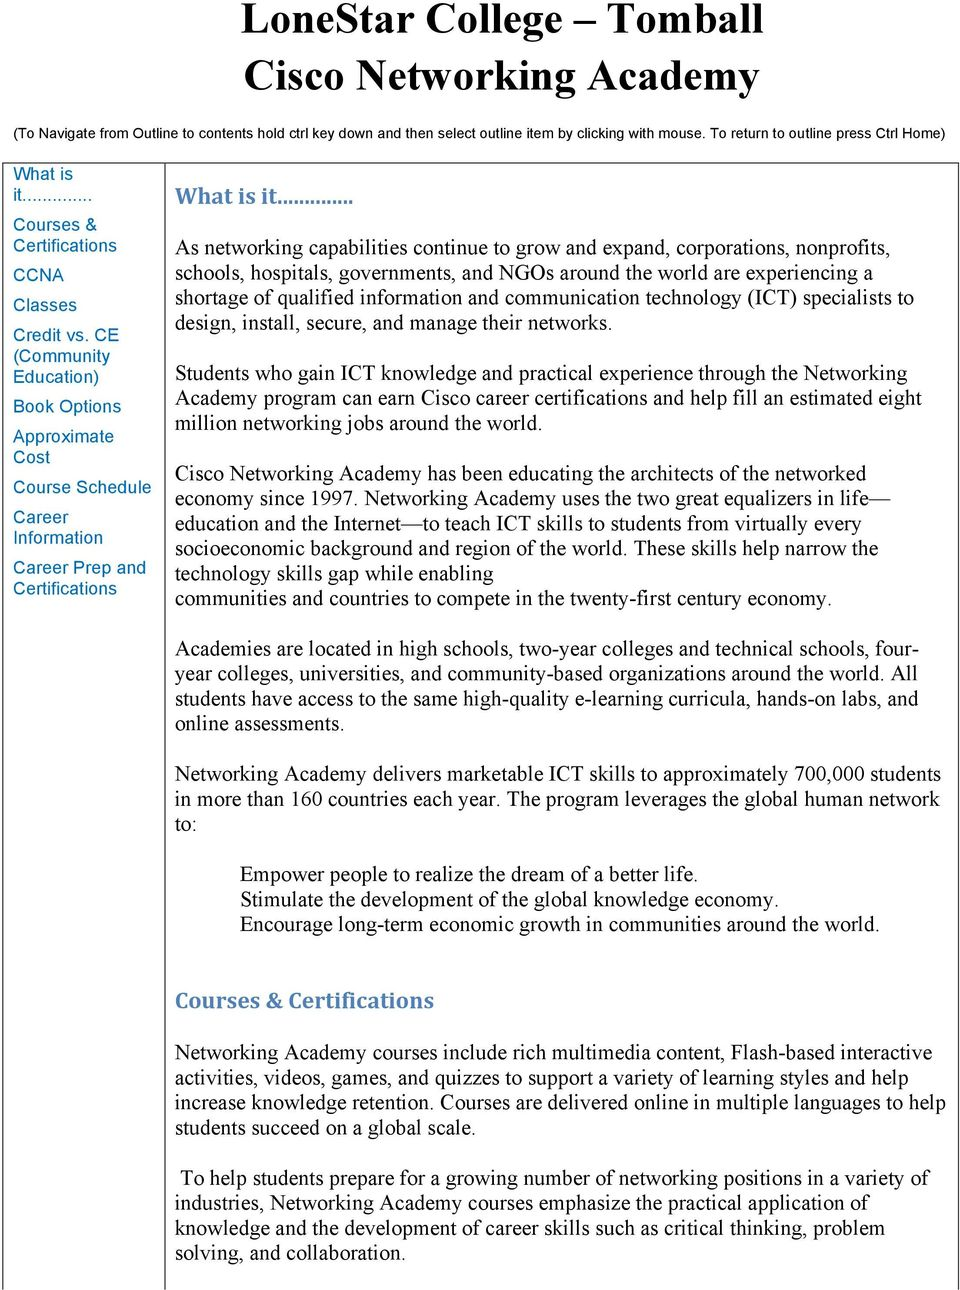 LoneStar College Tomball Cisco Networking Academy - PDF Free